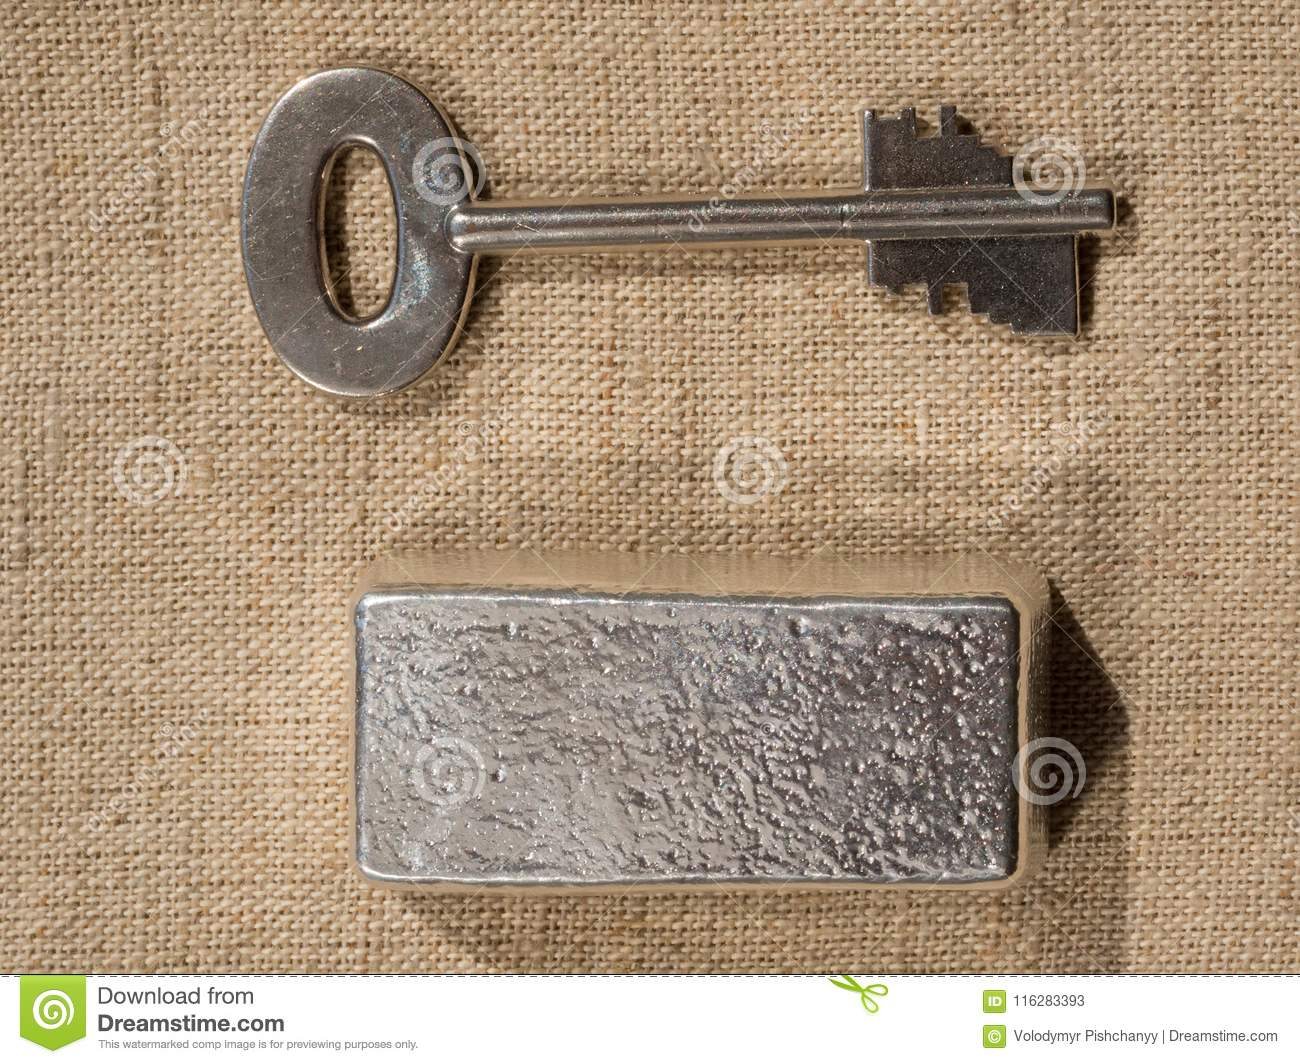 Cast silver bars and the key to the safe against a rough texture of the fabric